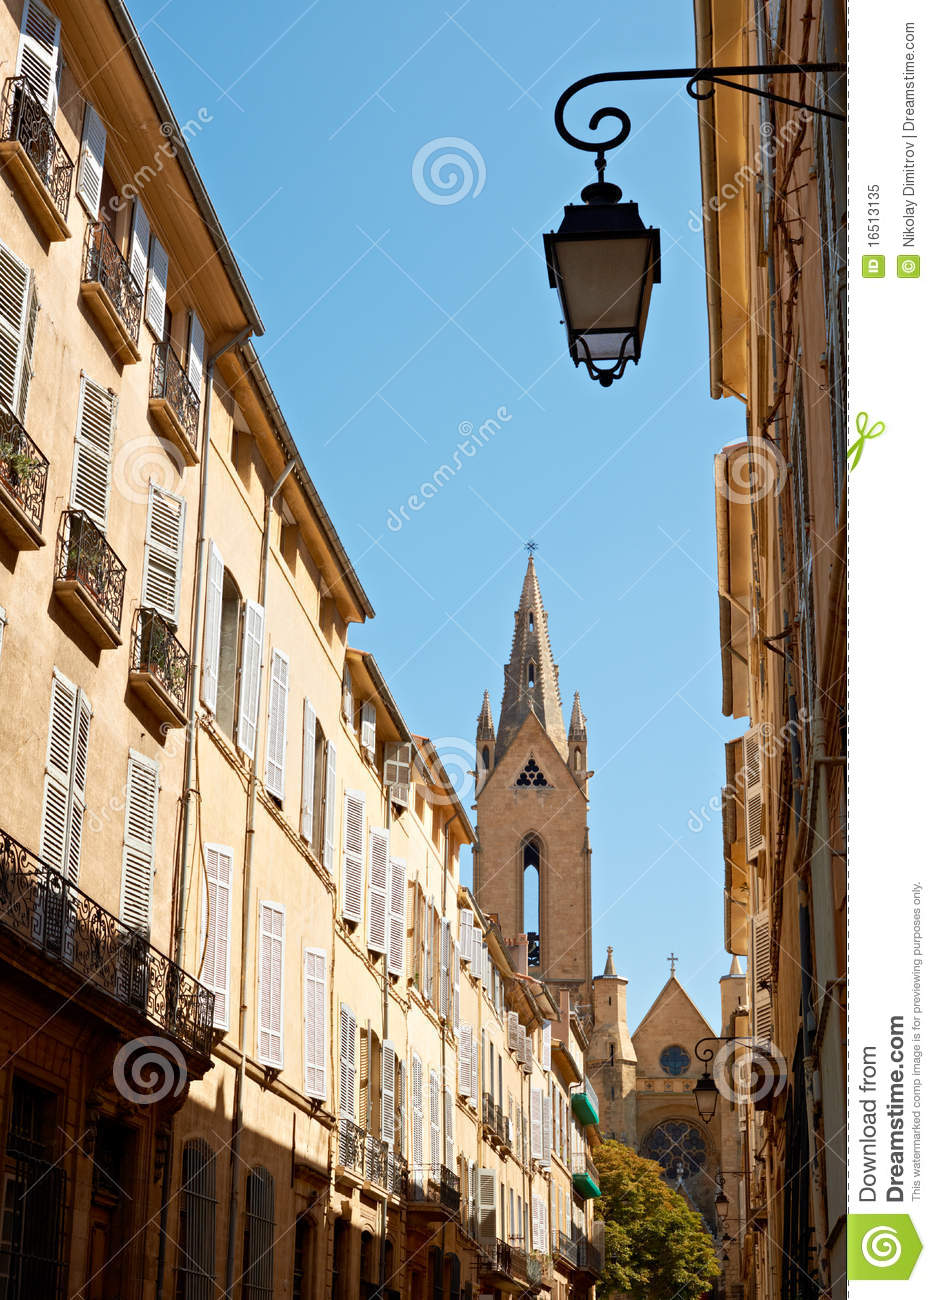 street architecture in aix en provence royalty free stock photo image 16513135. Black Bedroom Furniture Sets. Home Design Ideas